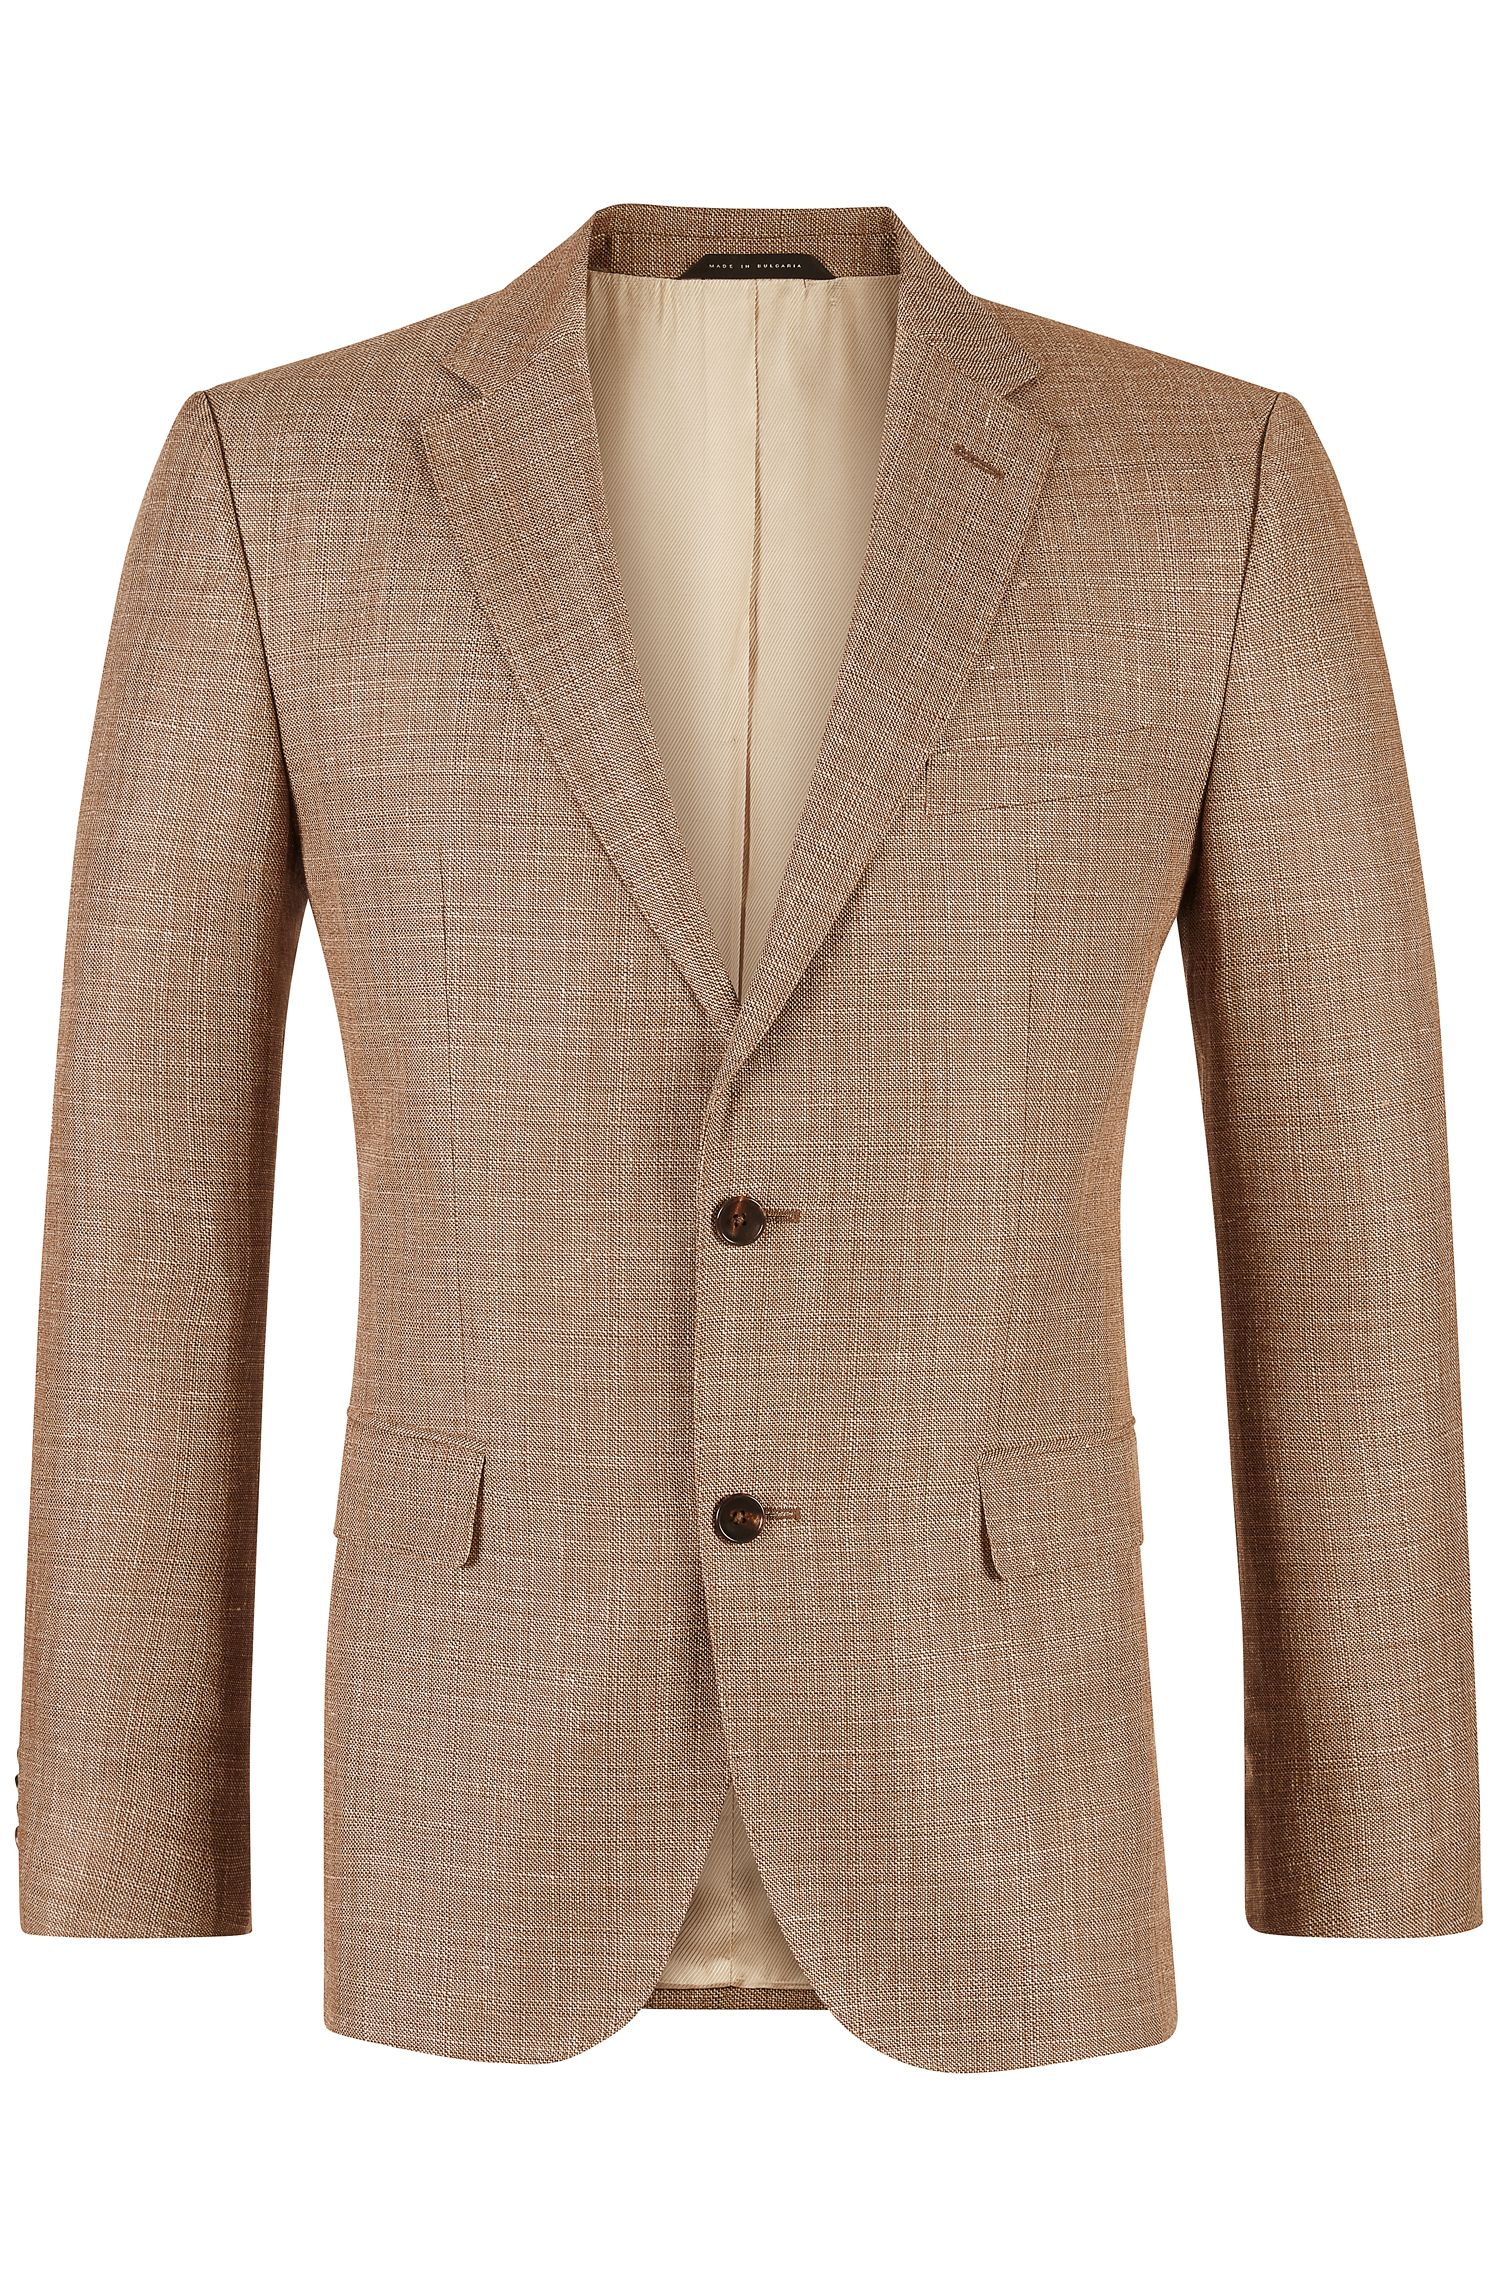 'Jayden' | Regular Fit, Italian Linen Virgin Wool Sport Coat